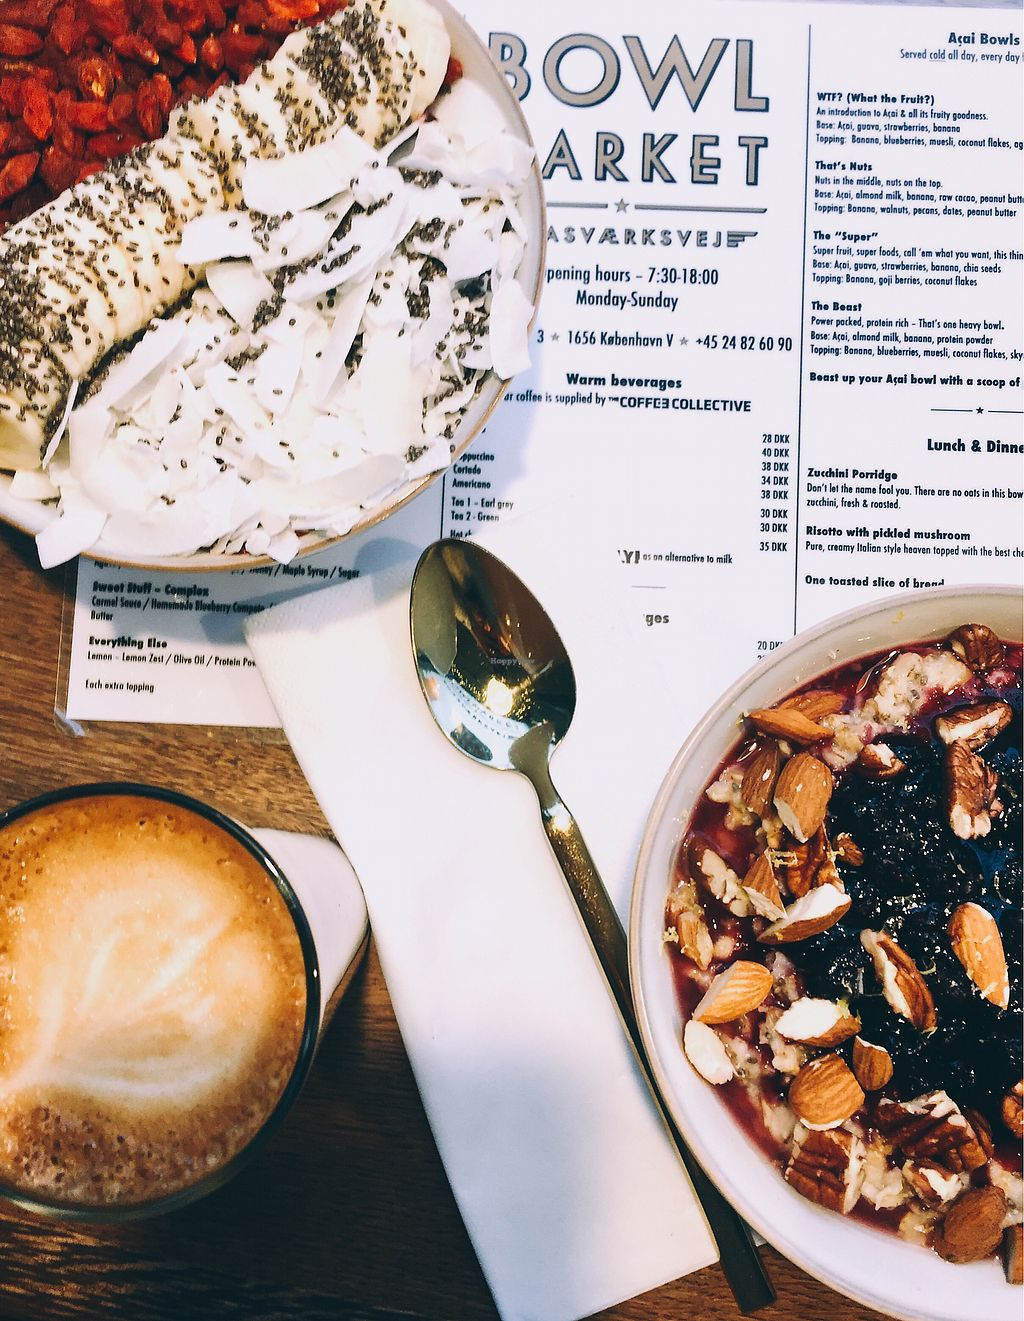 """Photo of Bowl Market  by <a href=""""/members/profile/KatjaValentinaKramp"""">KatjaValentinaKramp</a> <br/>Delicious breakfast options  <br/> January 30, 2018  - <a href='/contact/abuse/image/108954/352799'>Report</a>"""